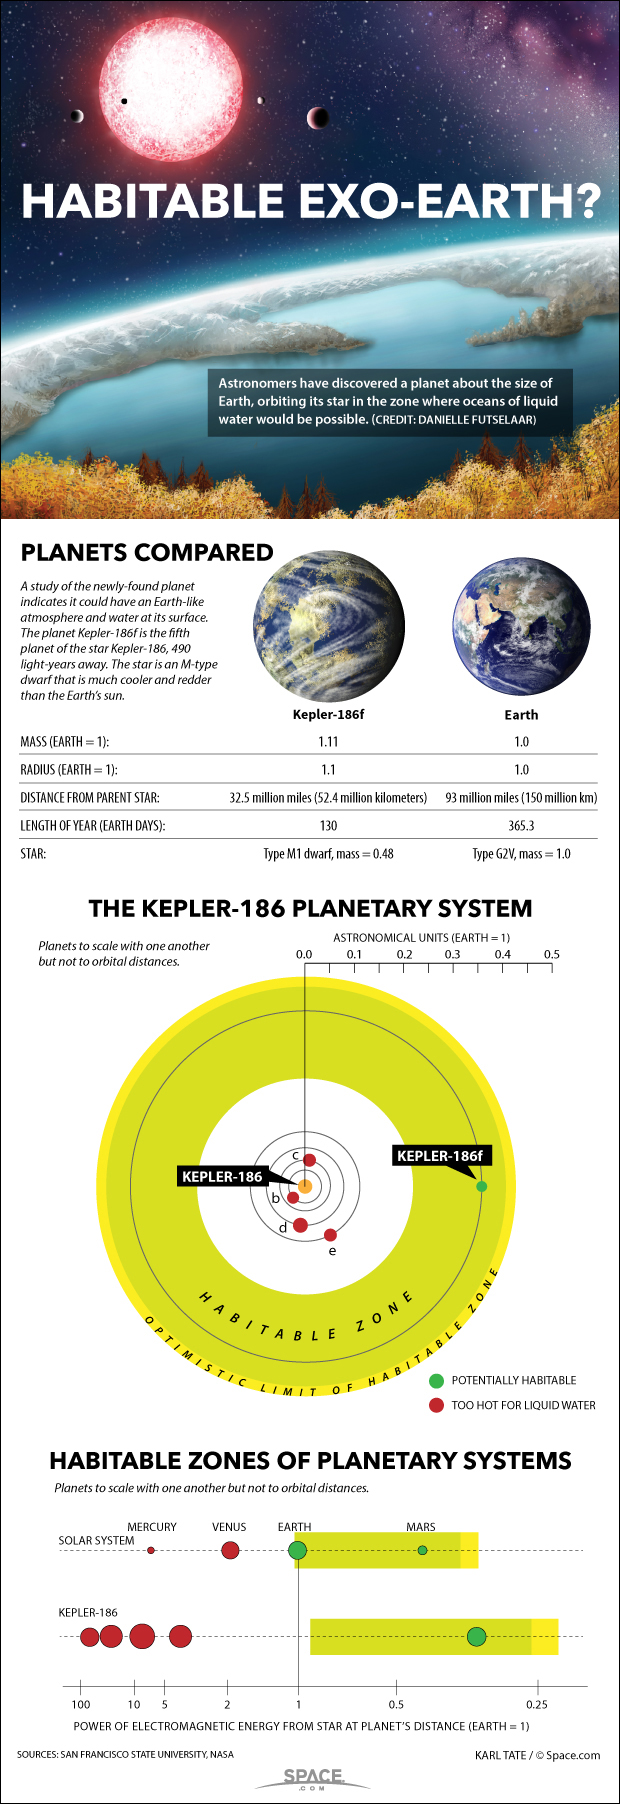 Facts about planet Kepler-186f.